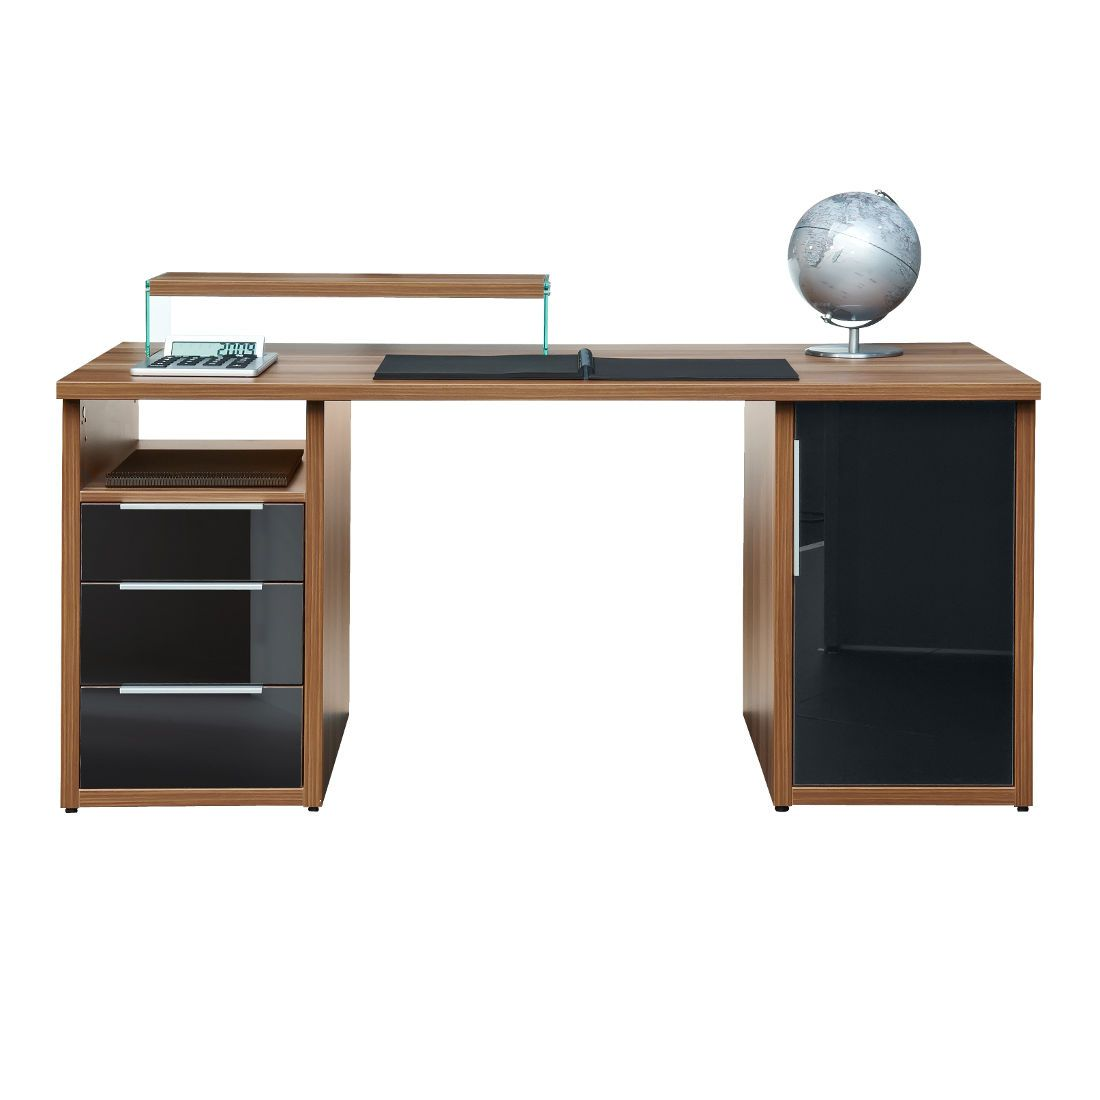 arte m bureau work elegante materiaalmix 3 lades 1 deur bij woonboulevard xl de mooiste. Black Bedroom Furniture Sets. Home Design Ideas